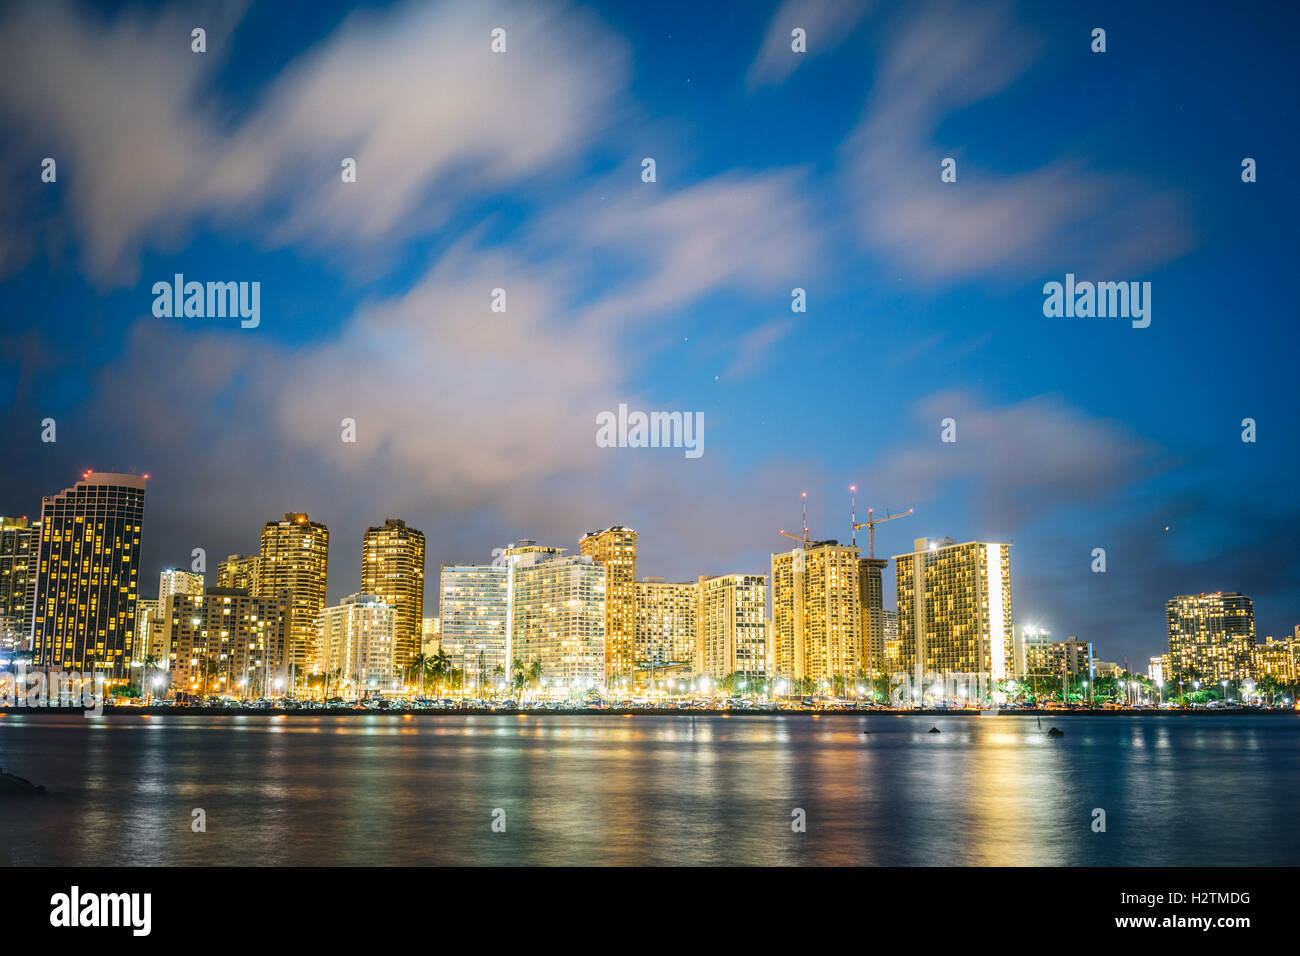 A night view of a section of Honolulu skyline viewed from Magic Island. - Stock Image